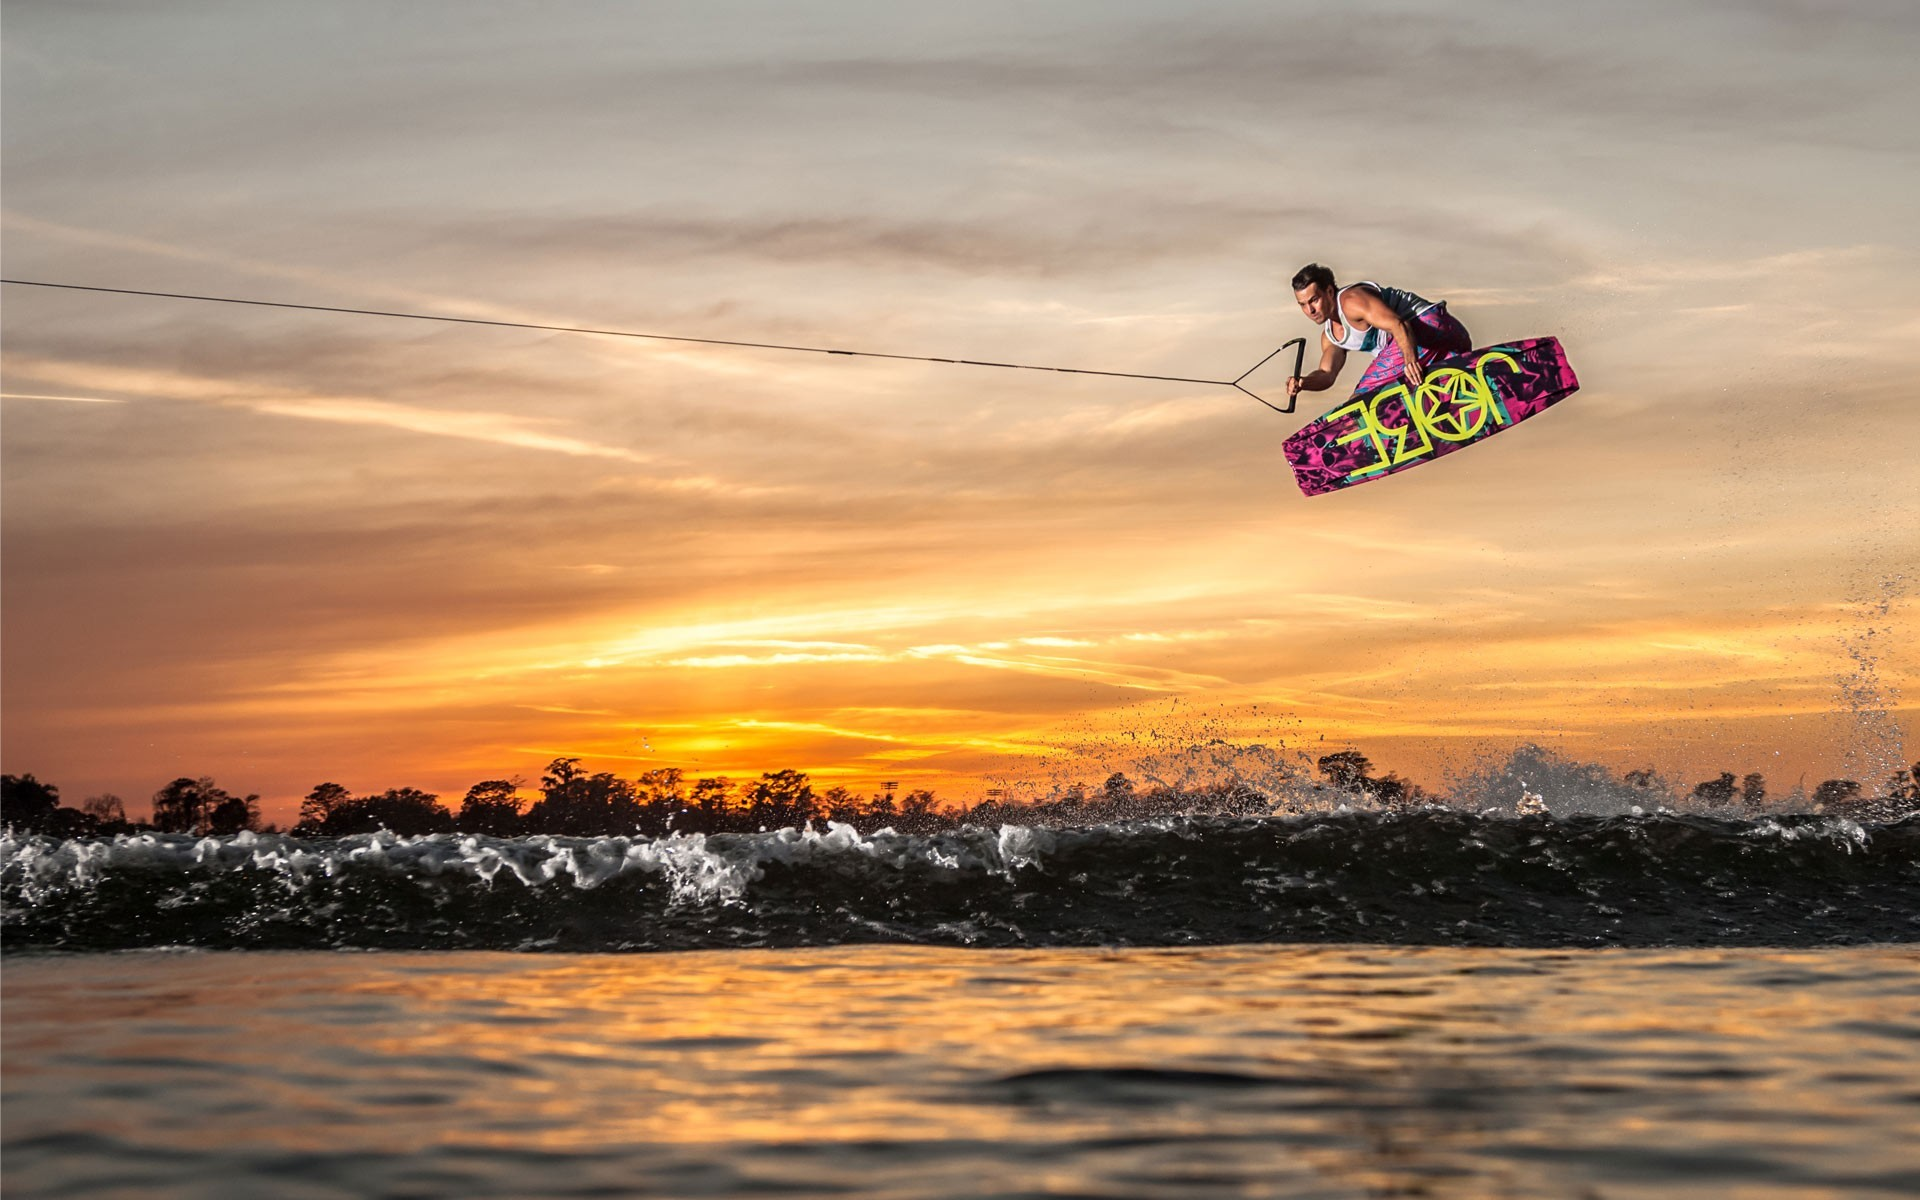 HD Wakeboard Wallpaper (79+ Images